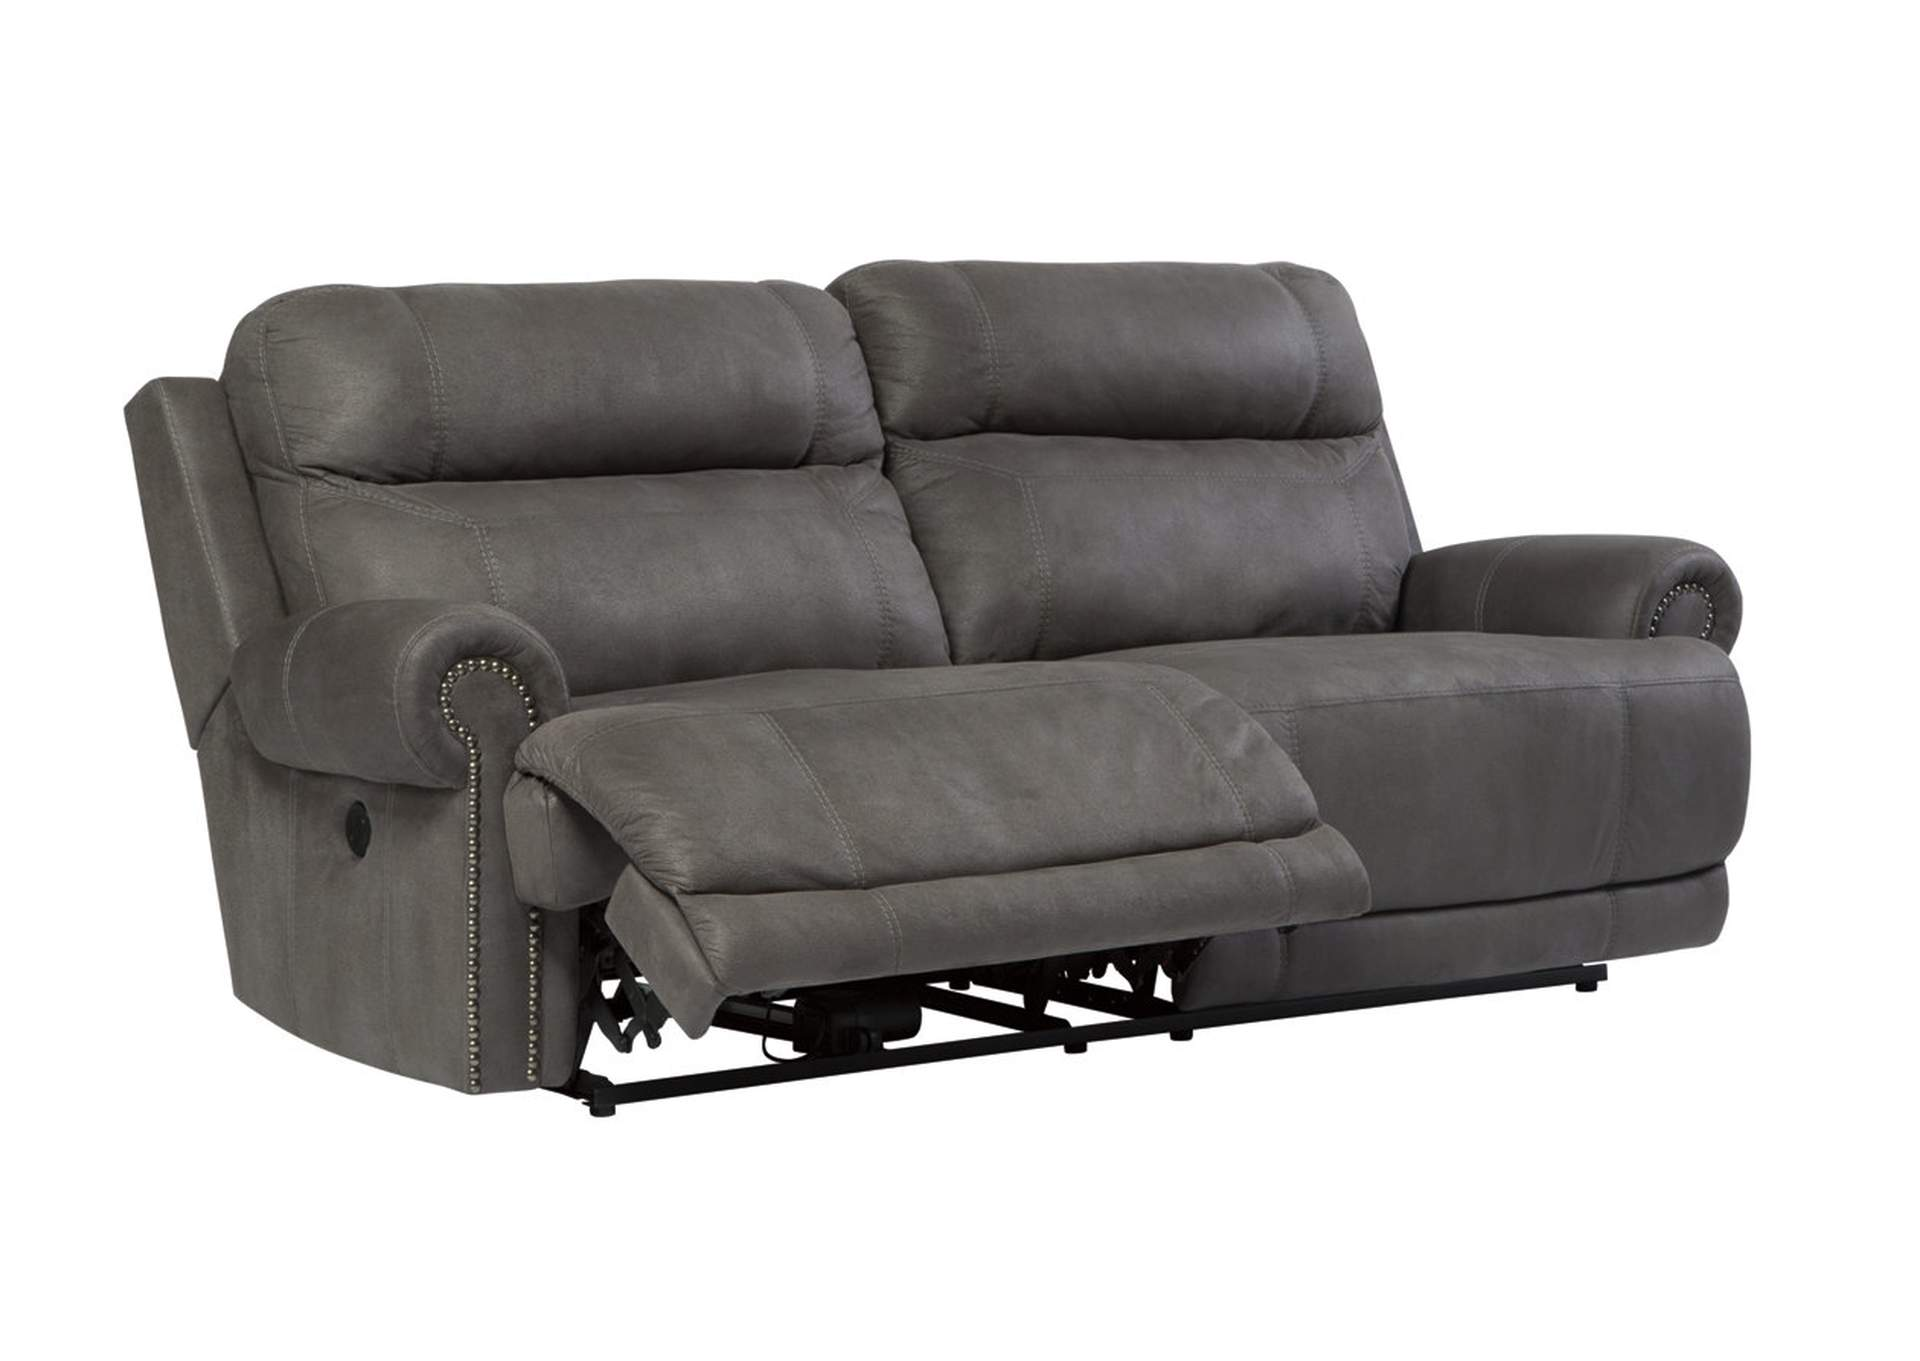 Austere Gray 2 Seat Power Reclining Sofa,Signature Design By Ashley